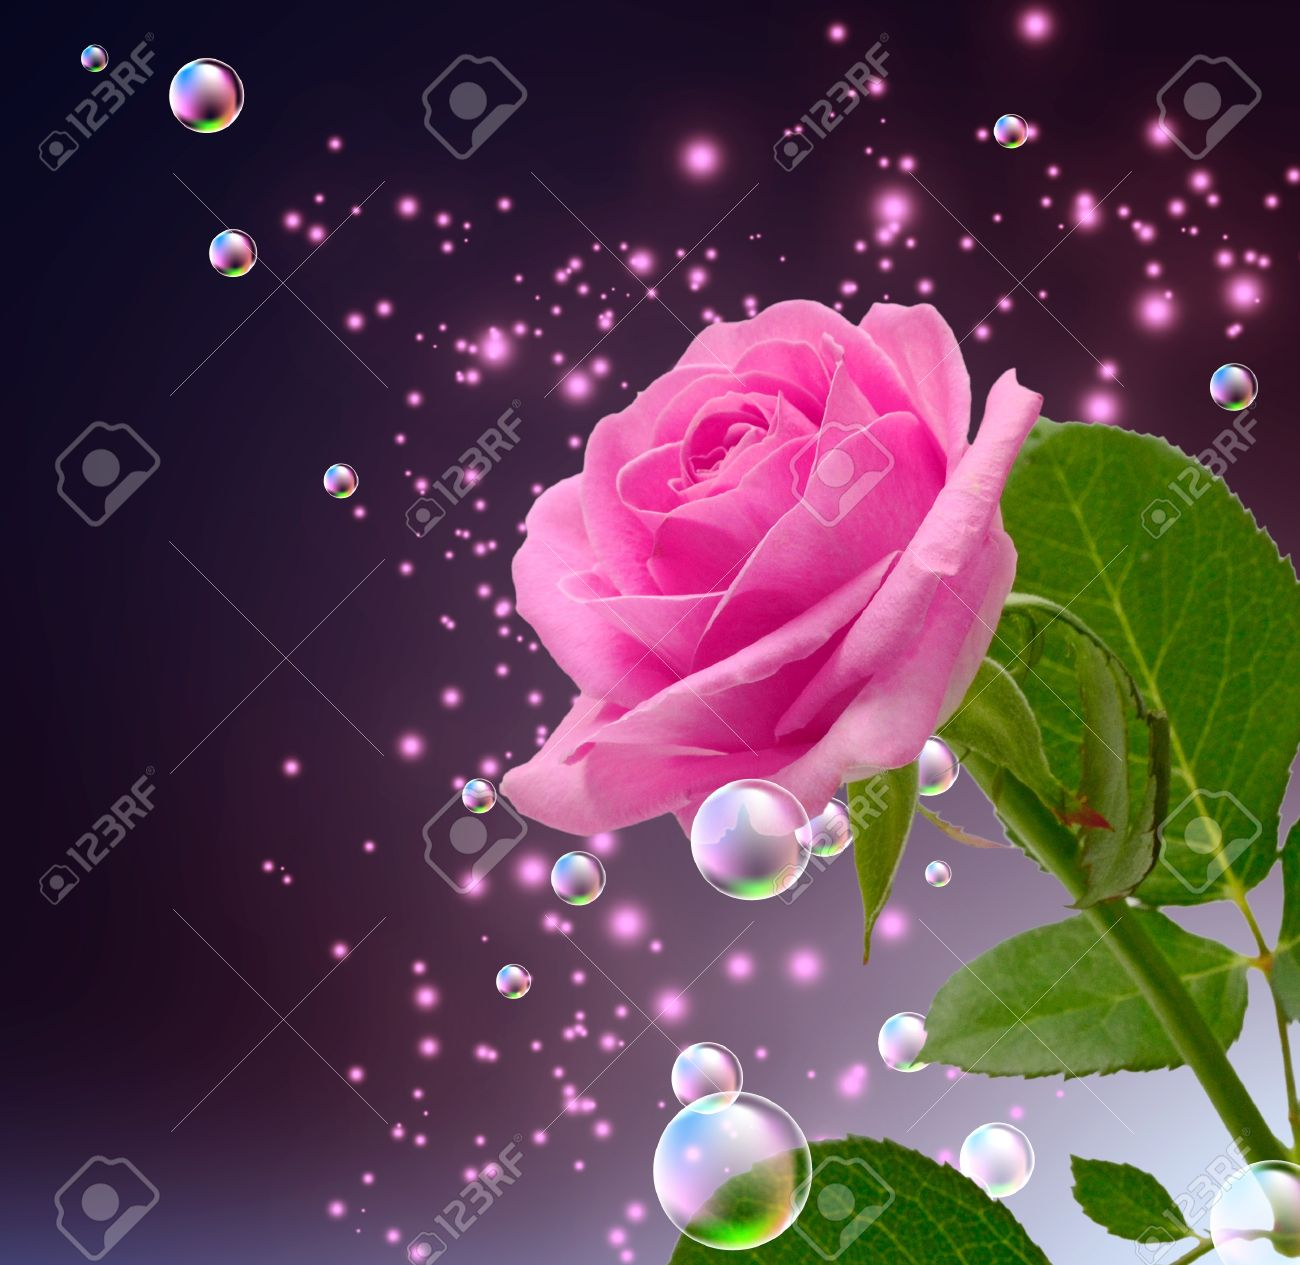 Rose, bubbles and stars - 14873890